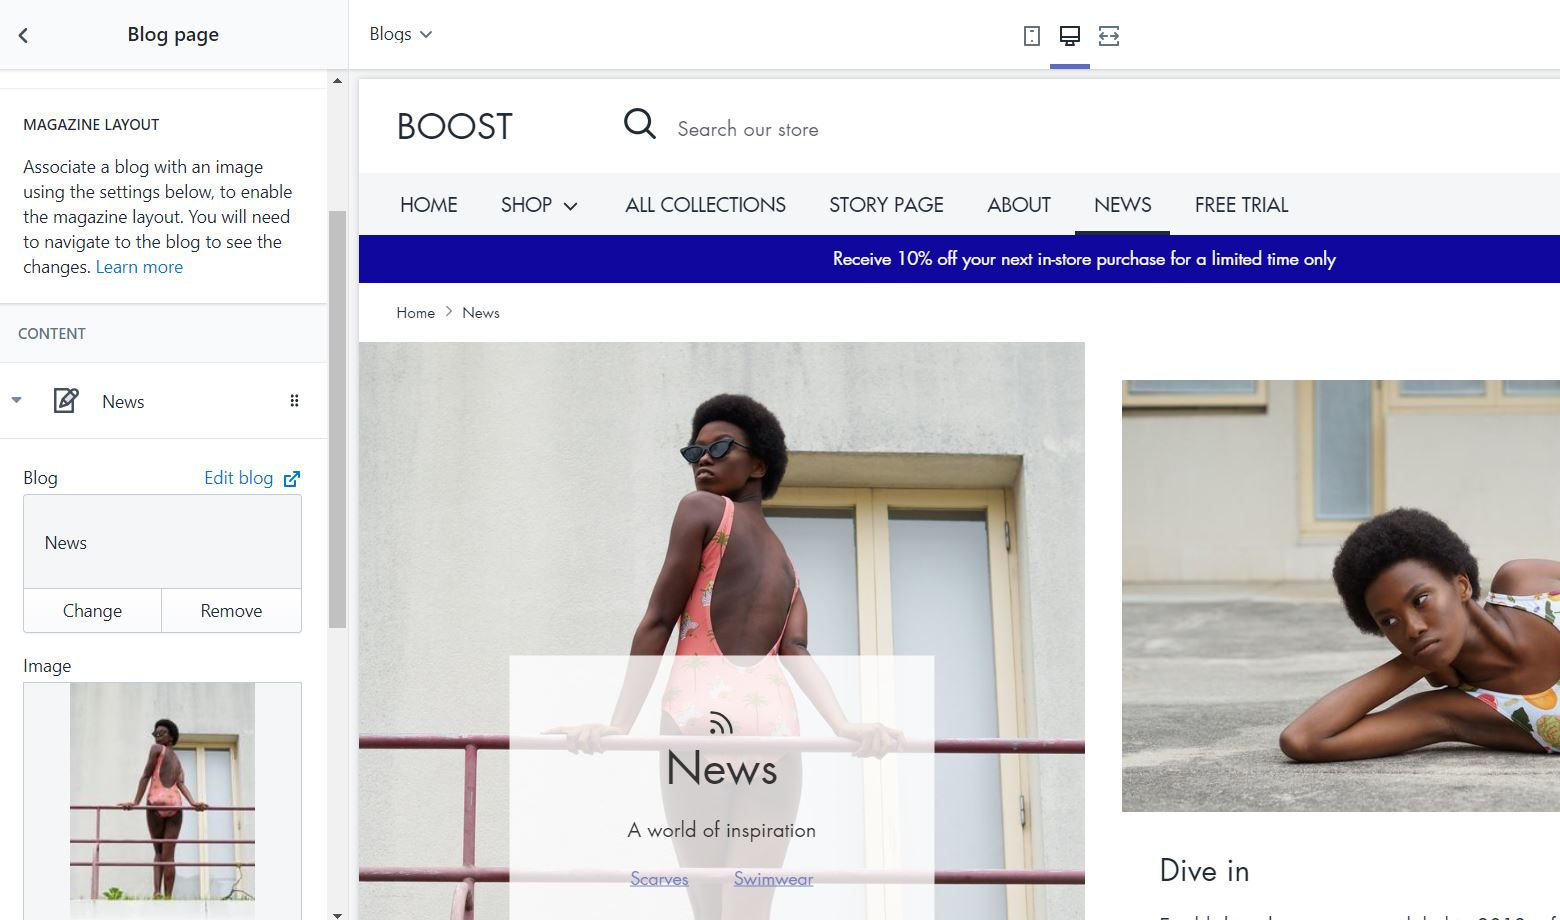 Boost Theme for Shopify: Magazine layout for the blog page